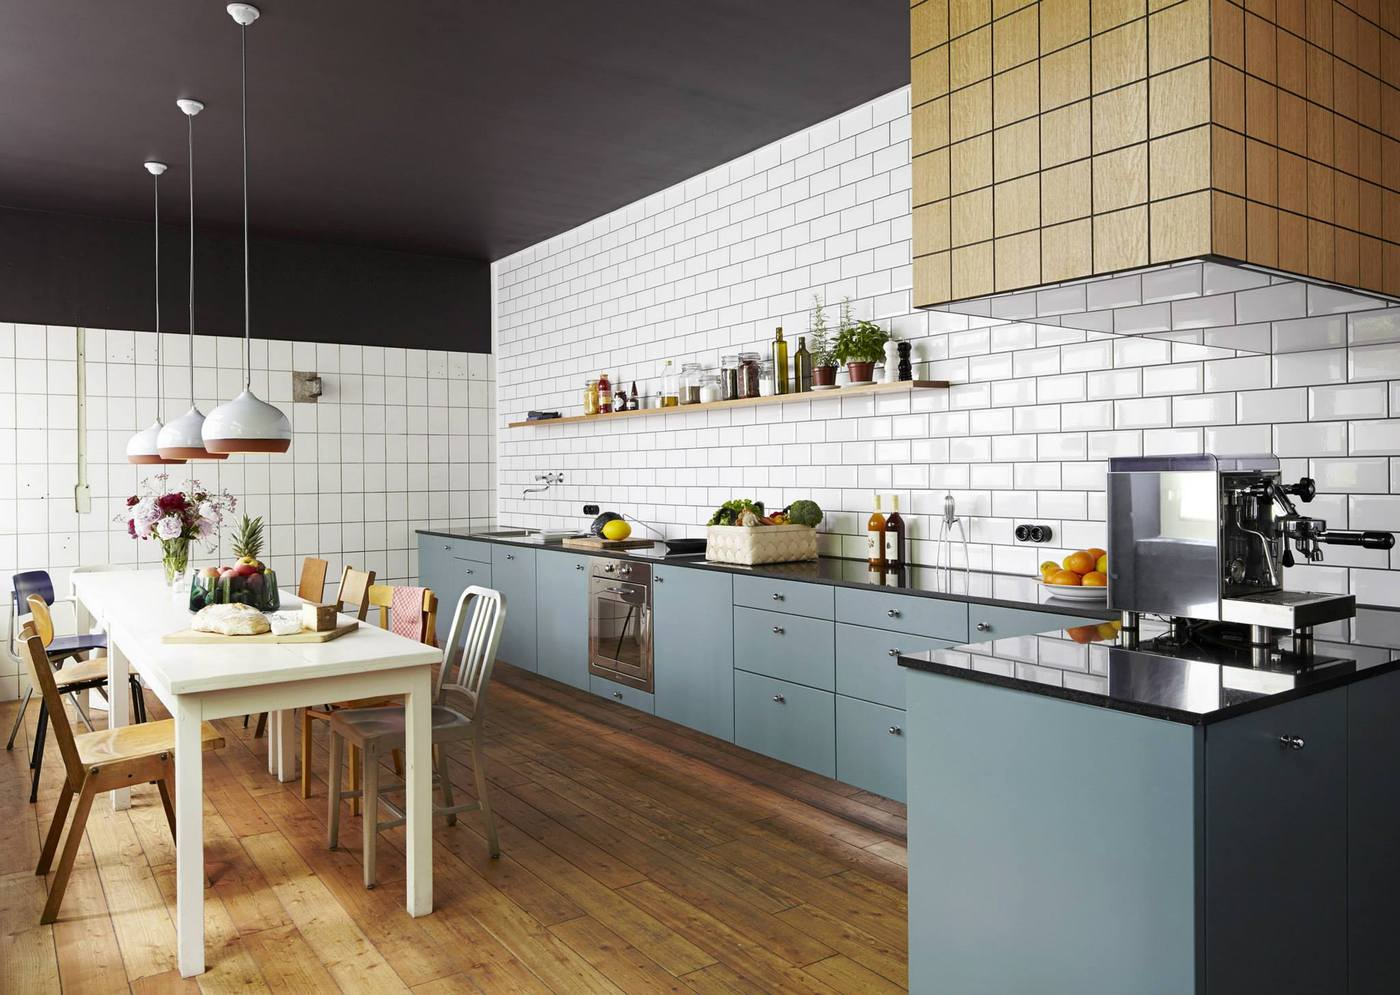 Subway Tile Kitchens white subway tile kitchen designs are incredibly universal: urban